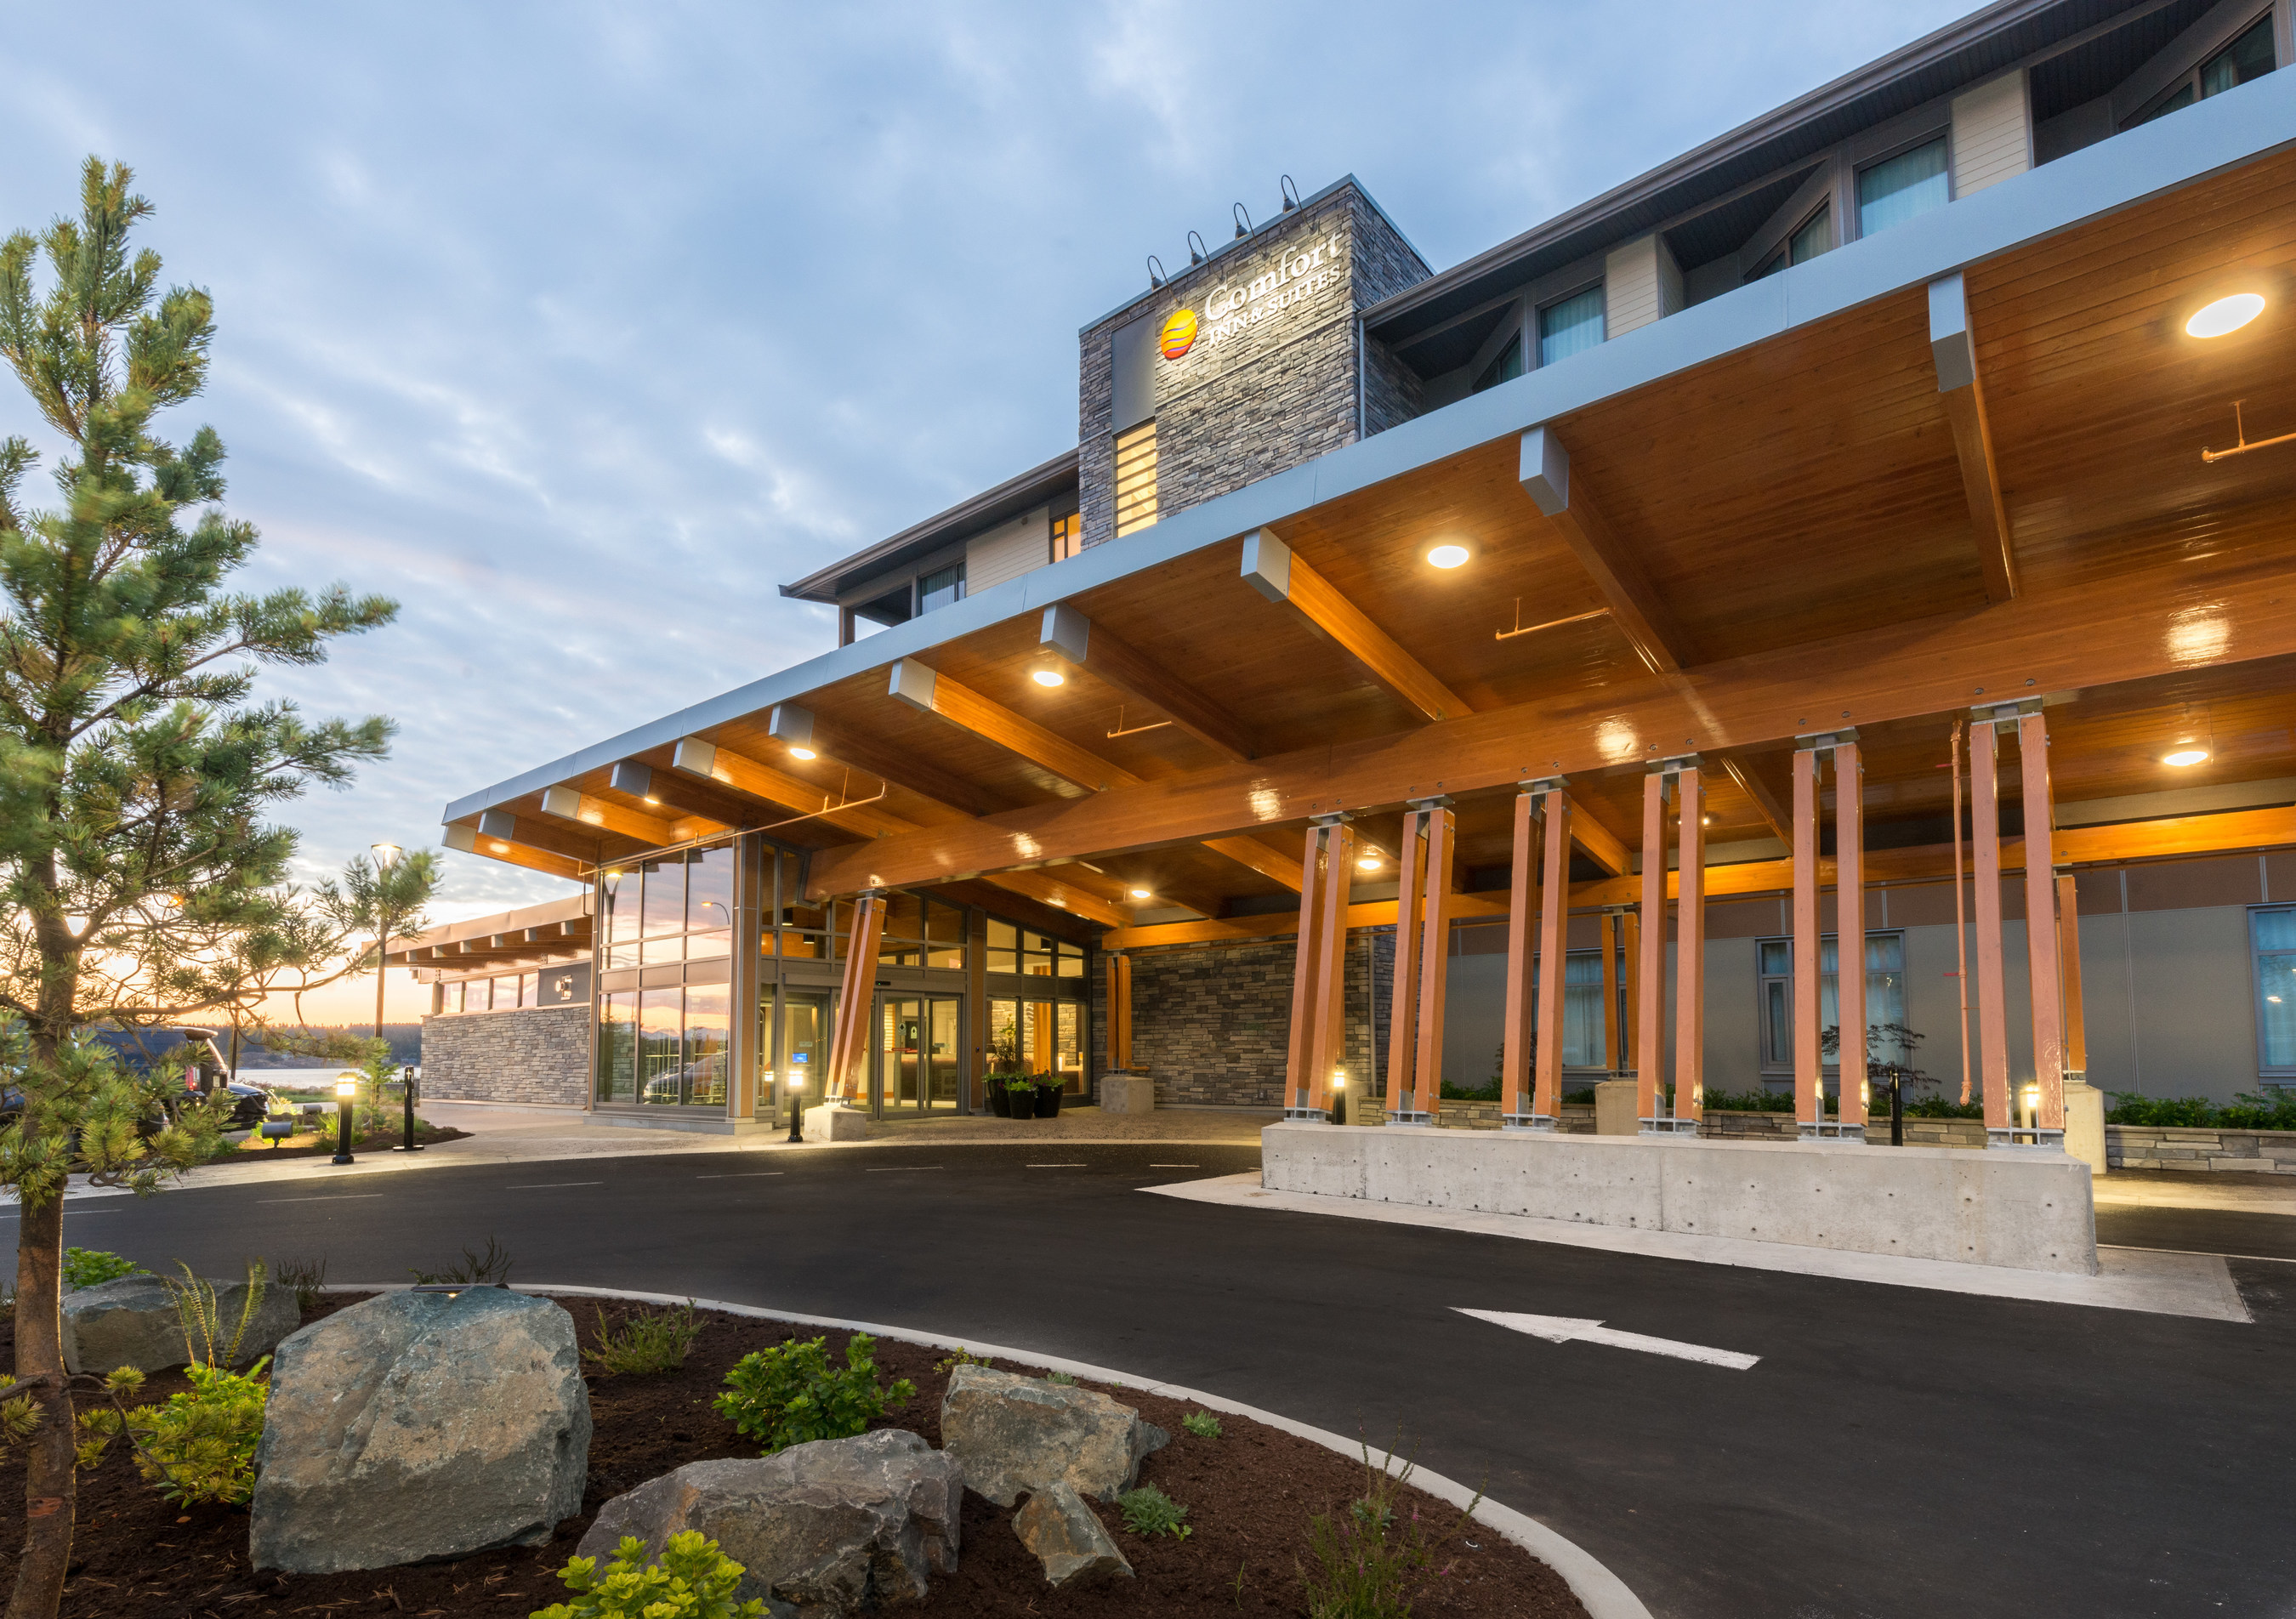 Comfort Inn Suites Campbell River Choice Hotels International Hotel Of The Year Award Winner For Brand Cnw Group Canada Inc